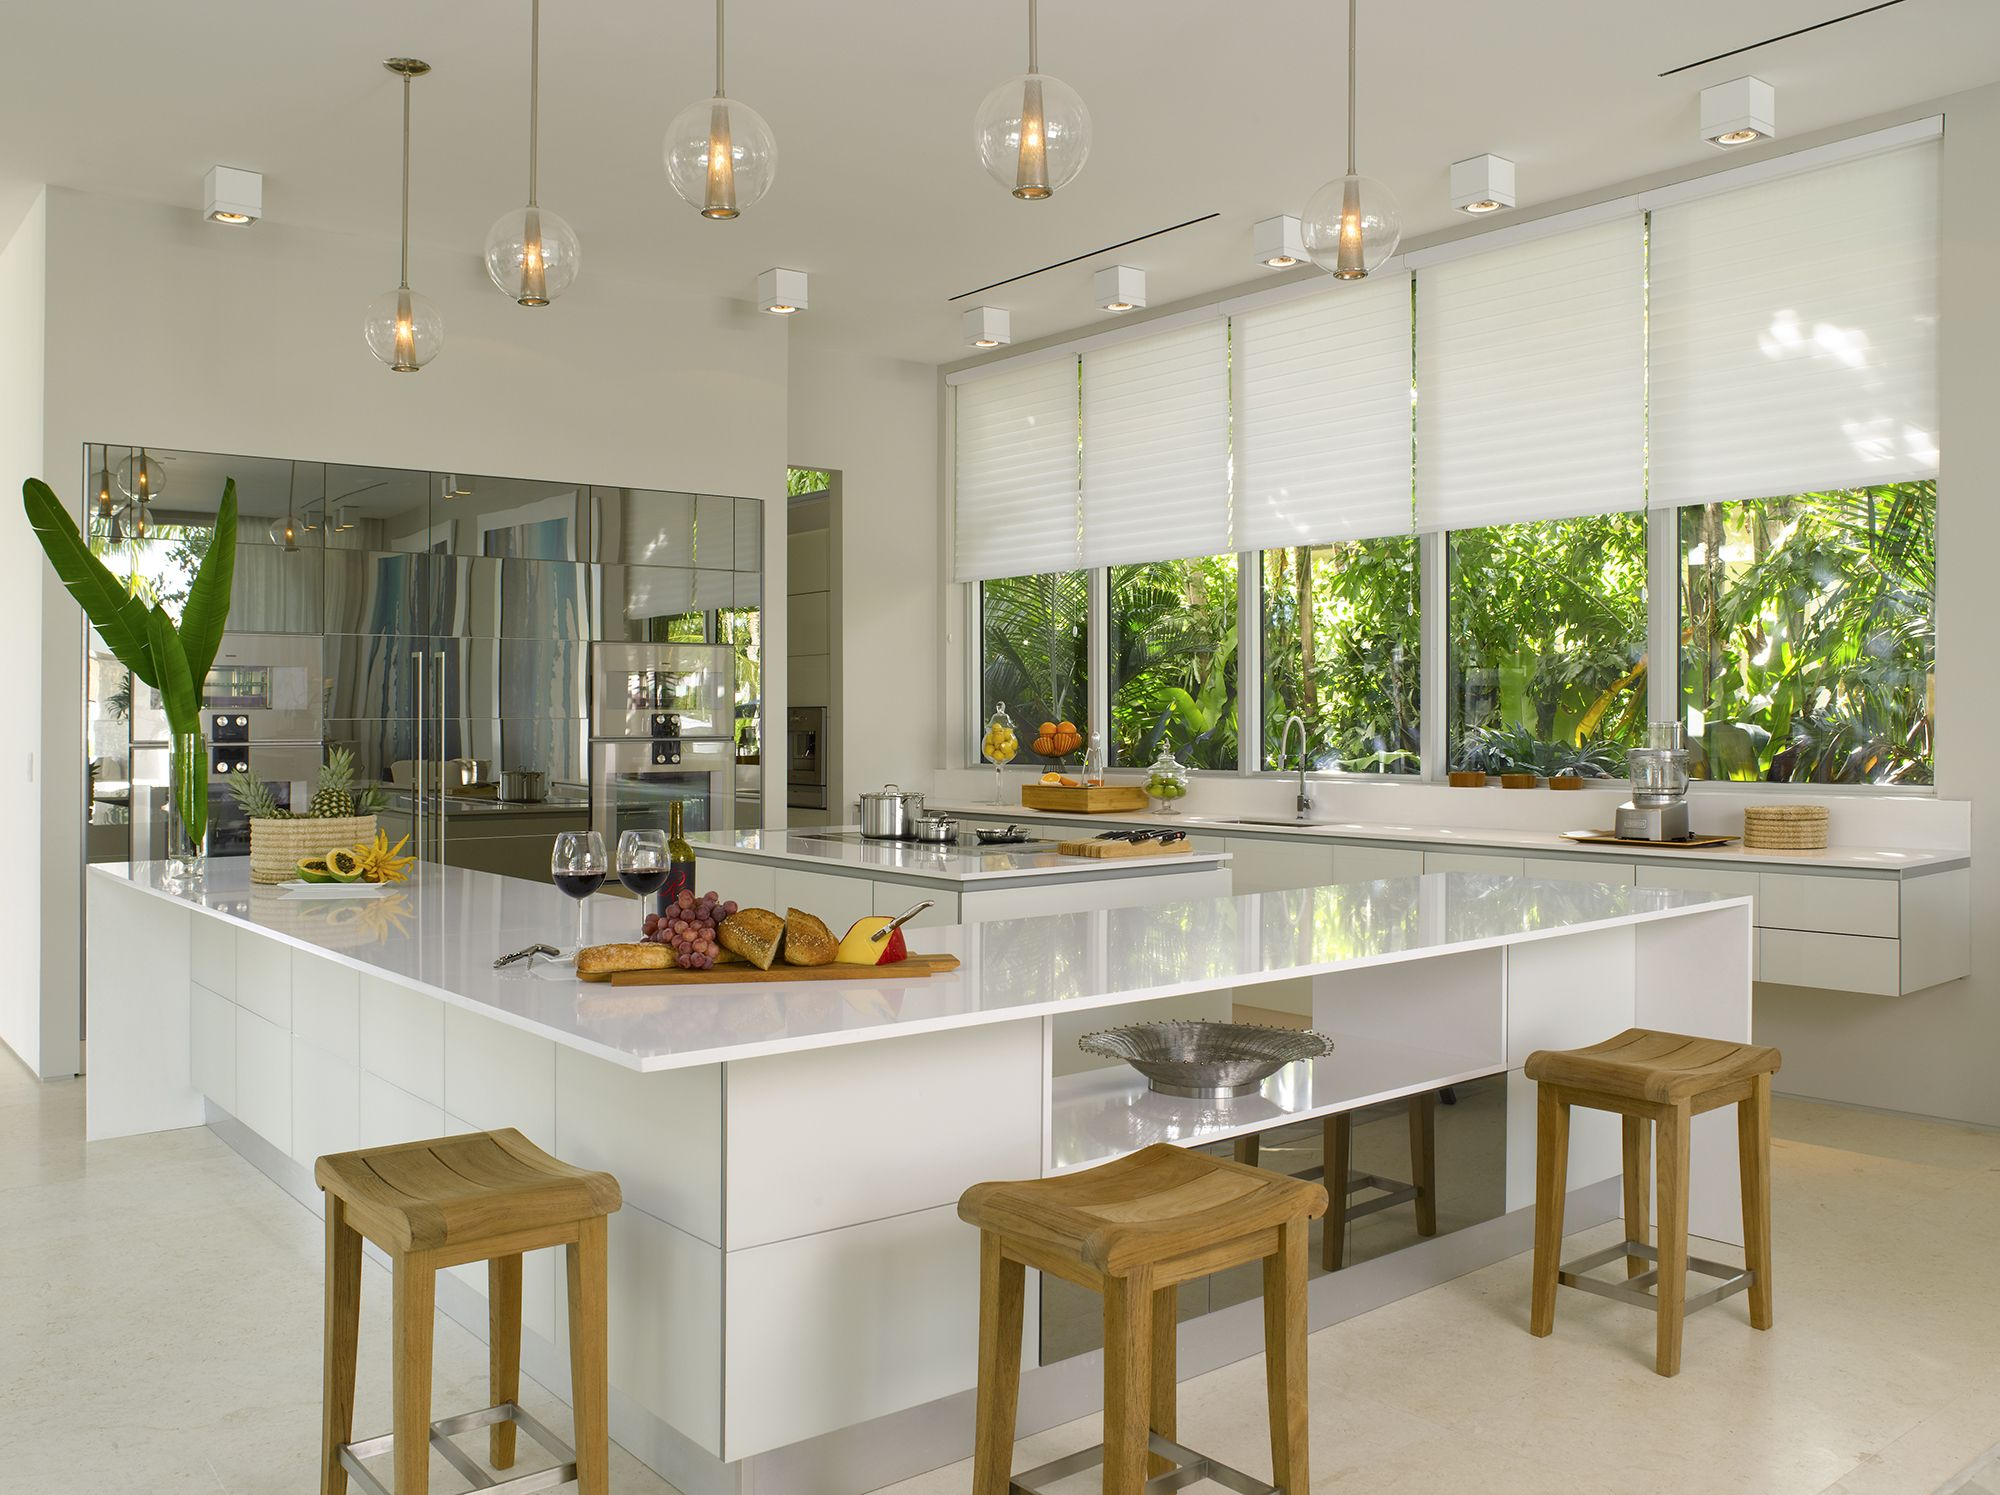 A brilliant white kitchen design with silhouette window for Elle decor kitchen ideas